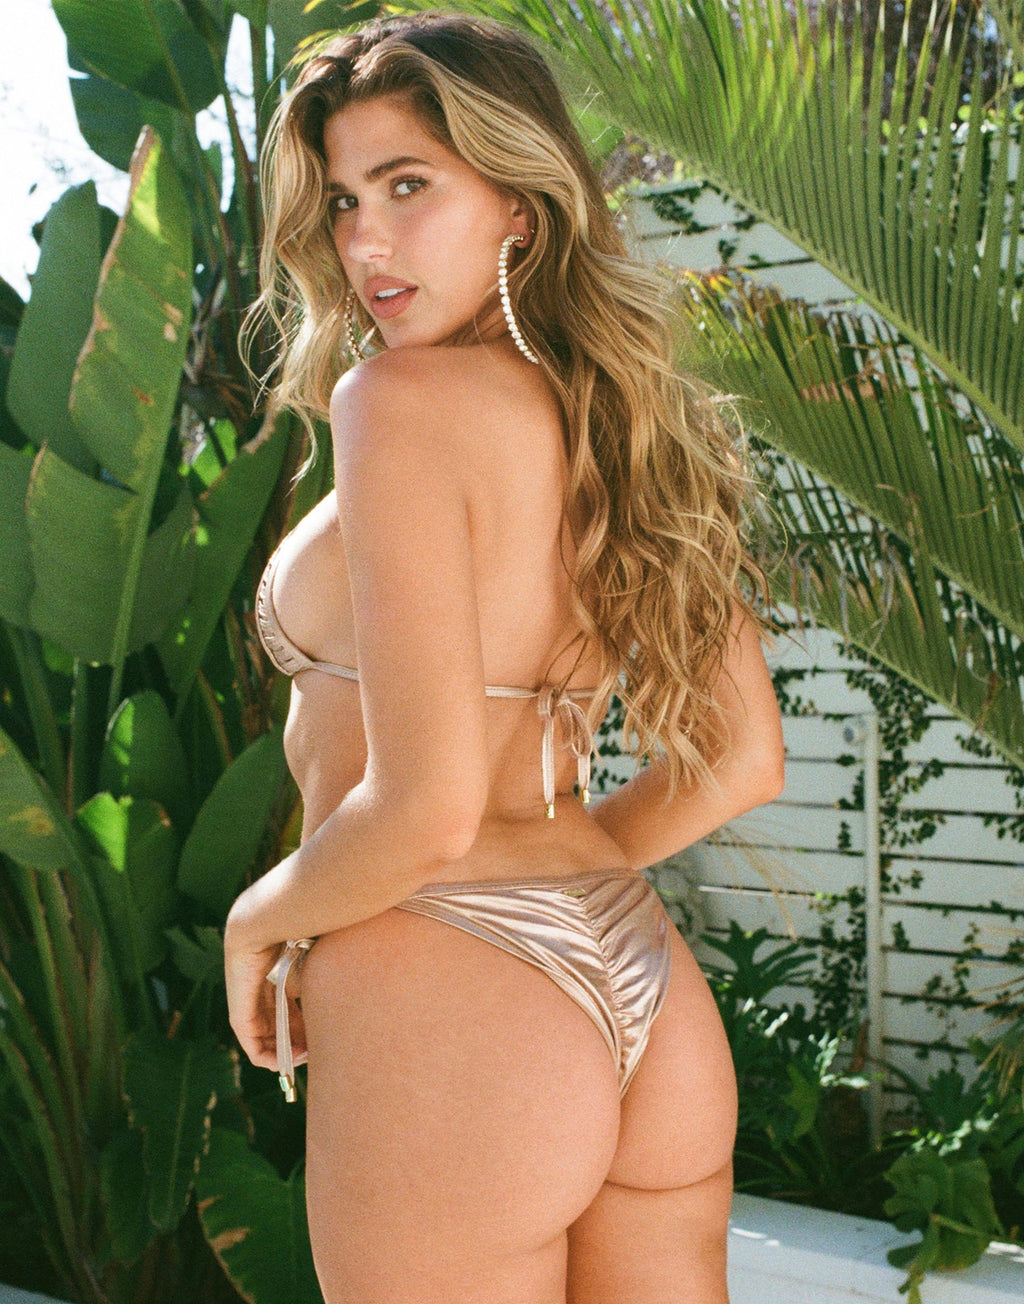 Hard Summer Triangle Bikini Top in Rose Gold with Nude Lining - Back View